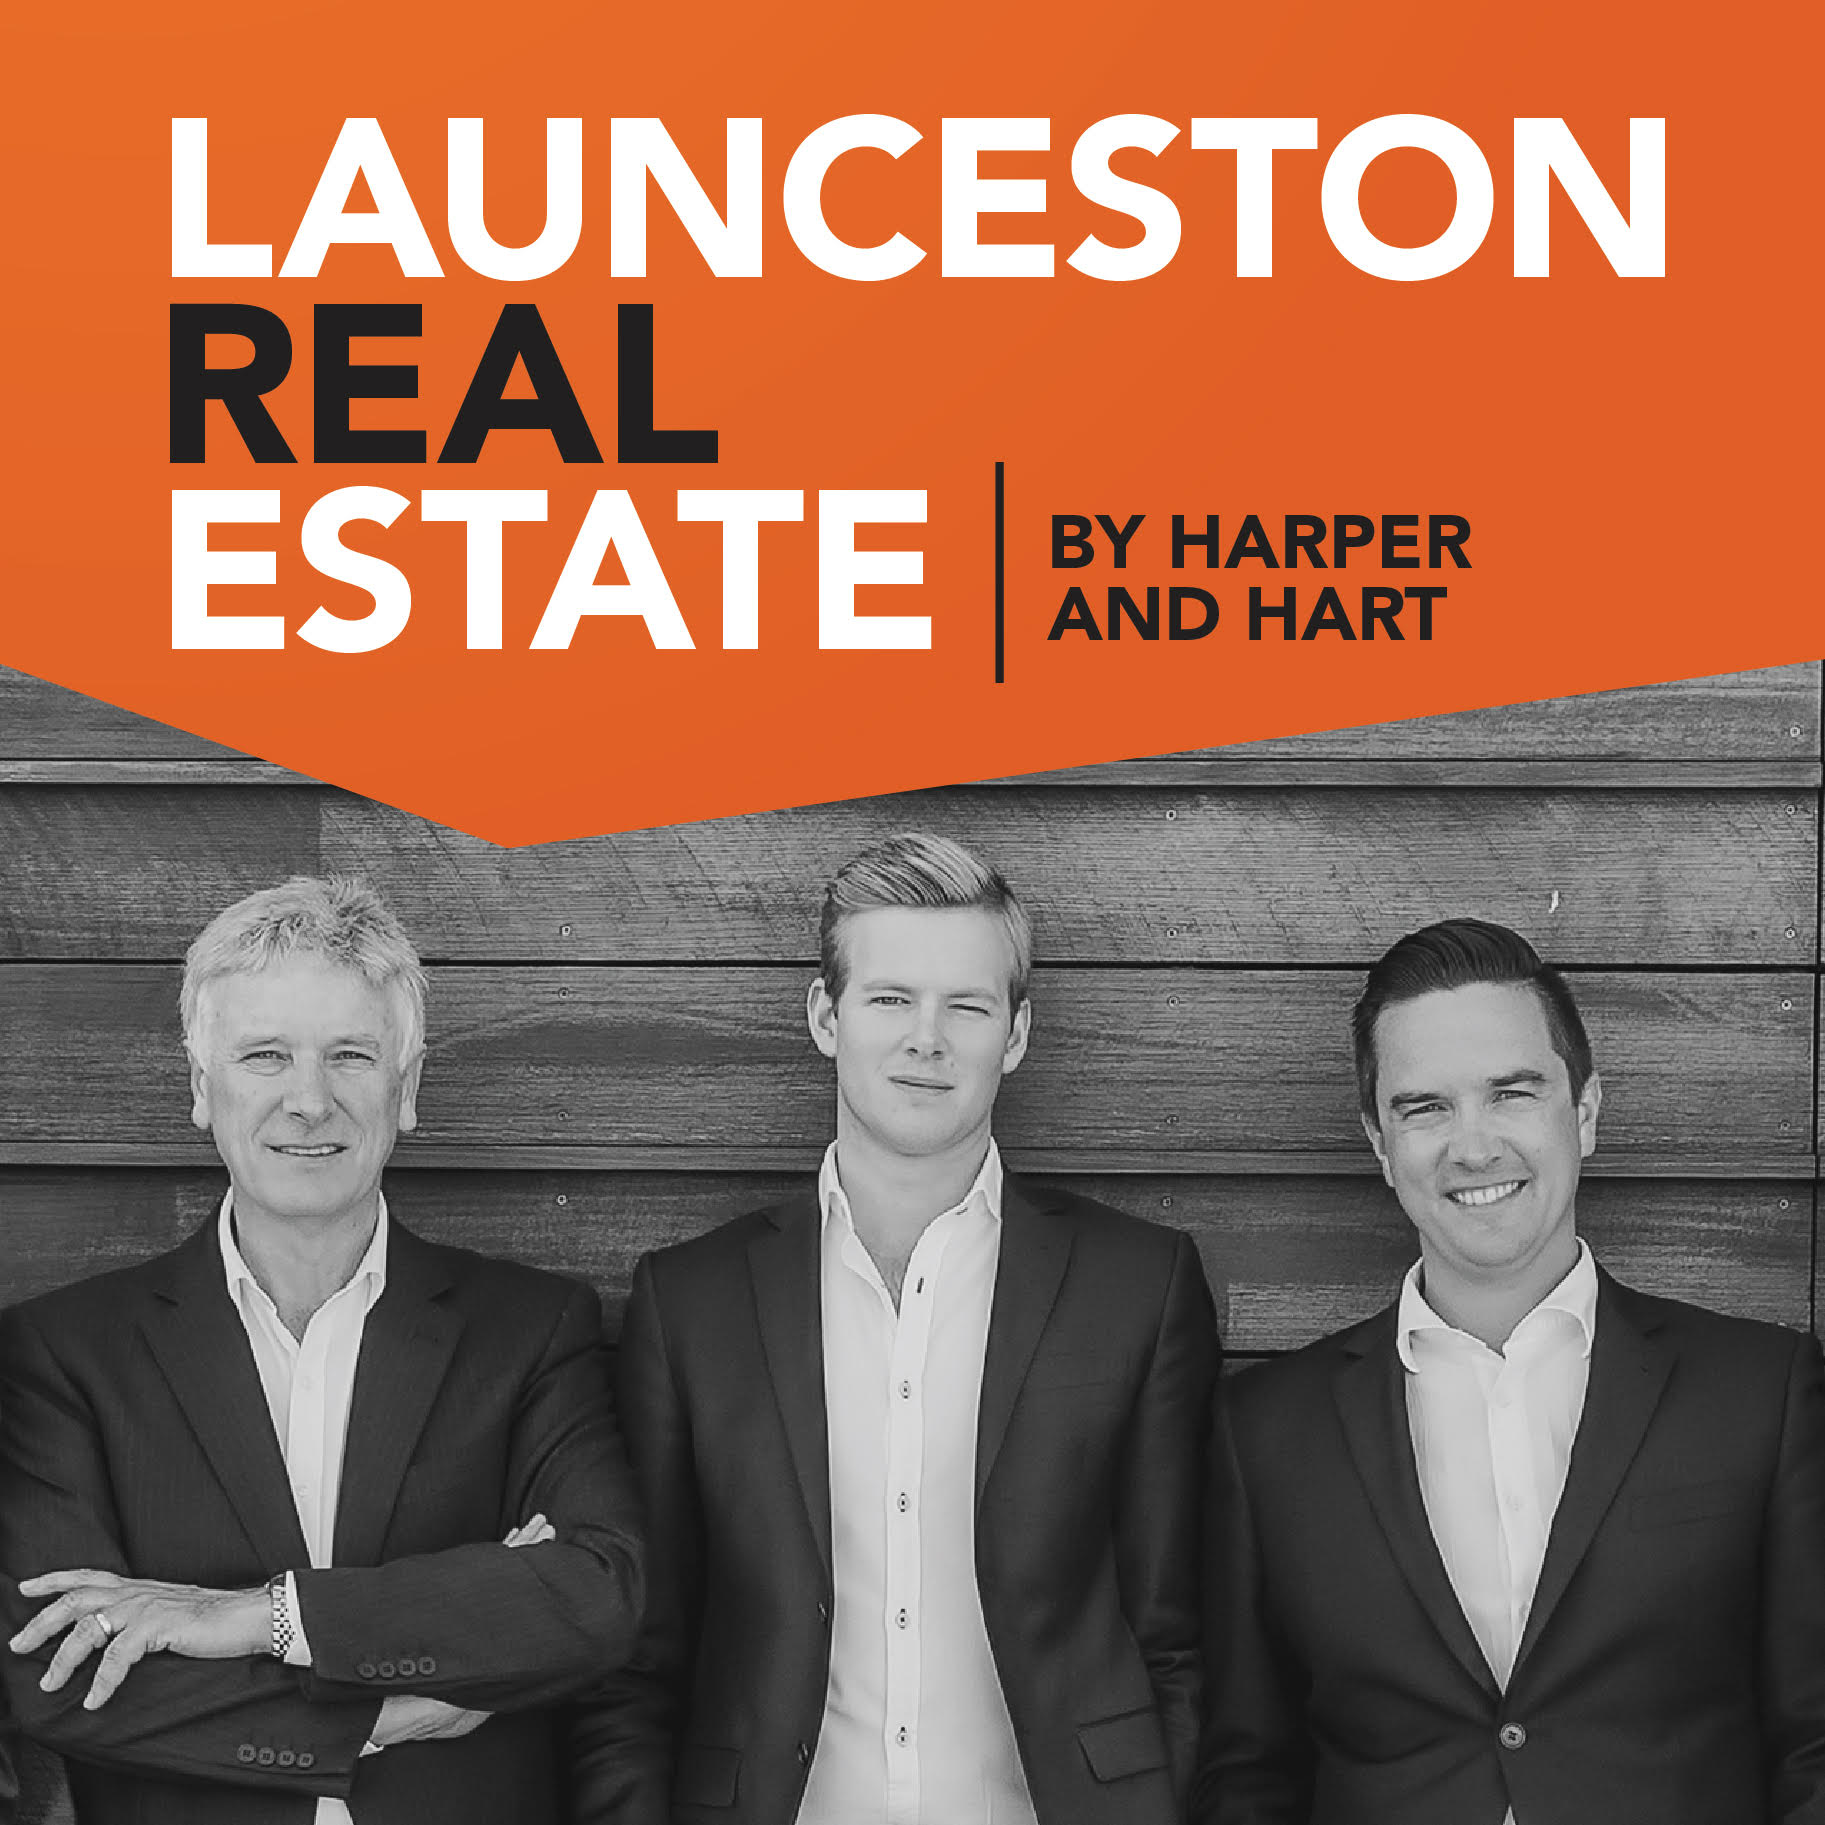 Launceston Real Estate